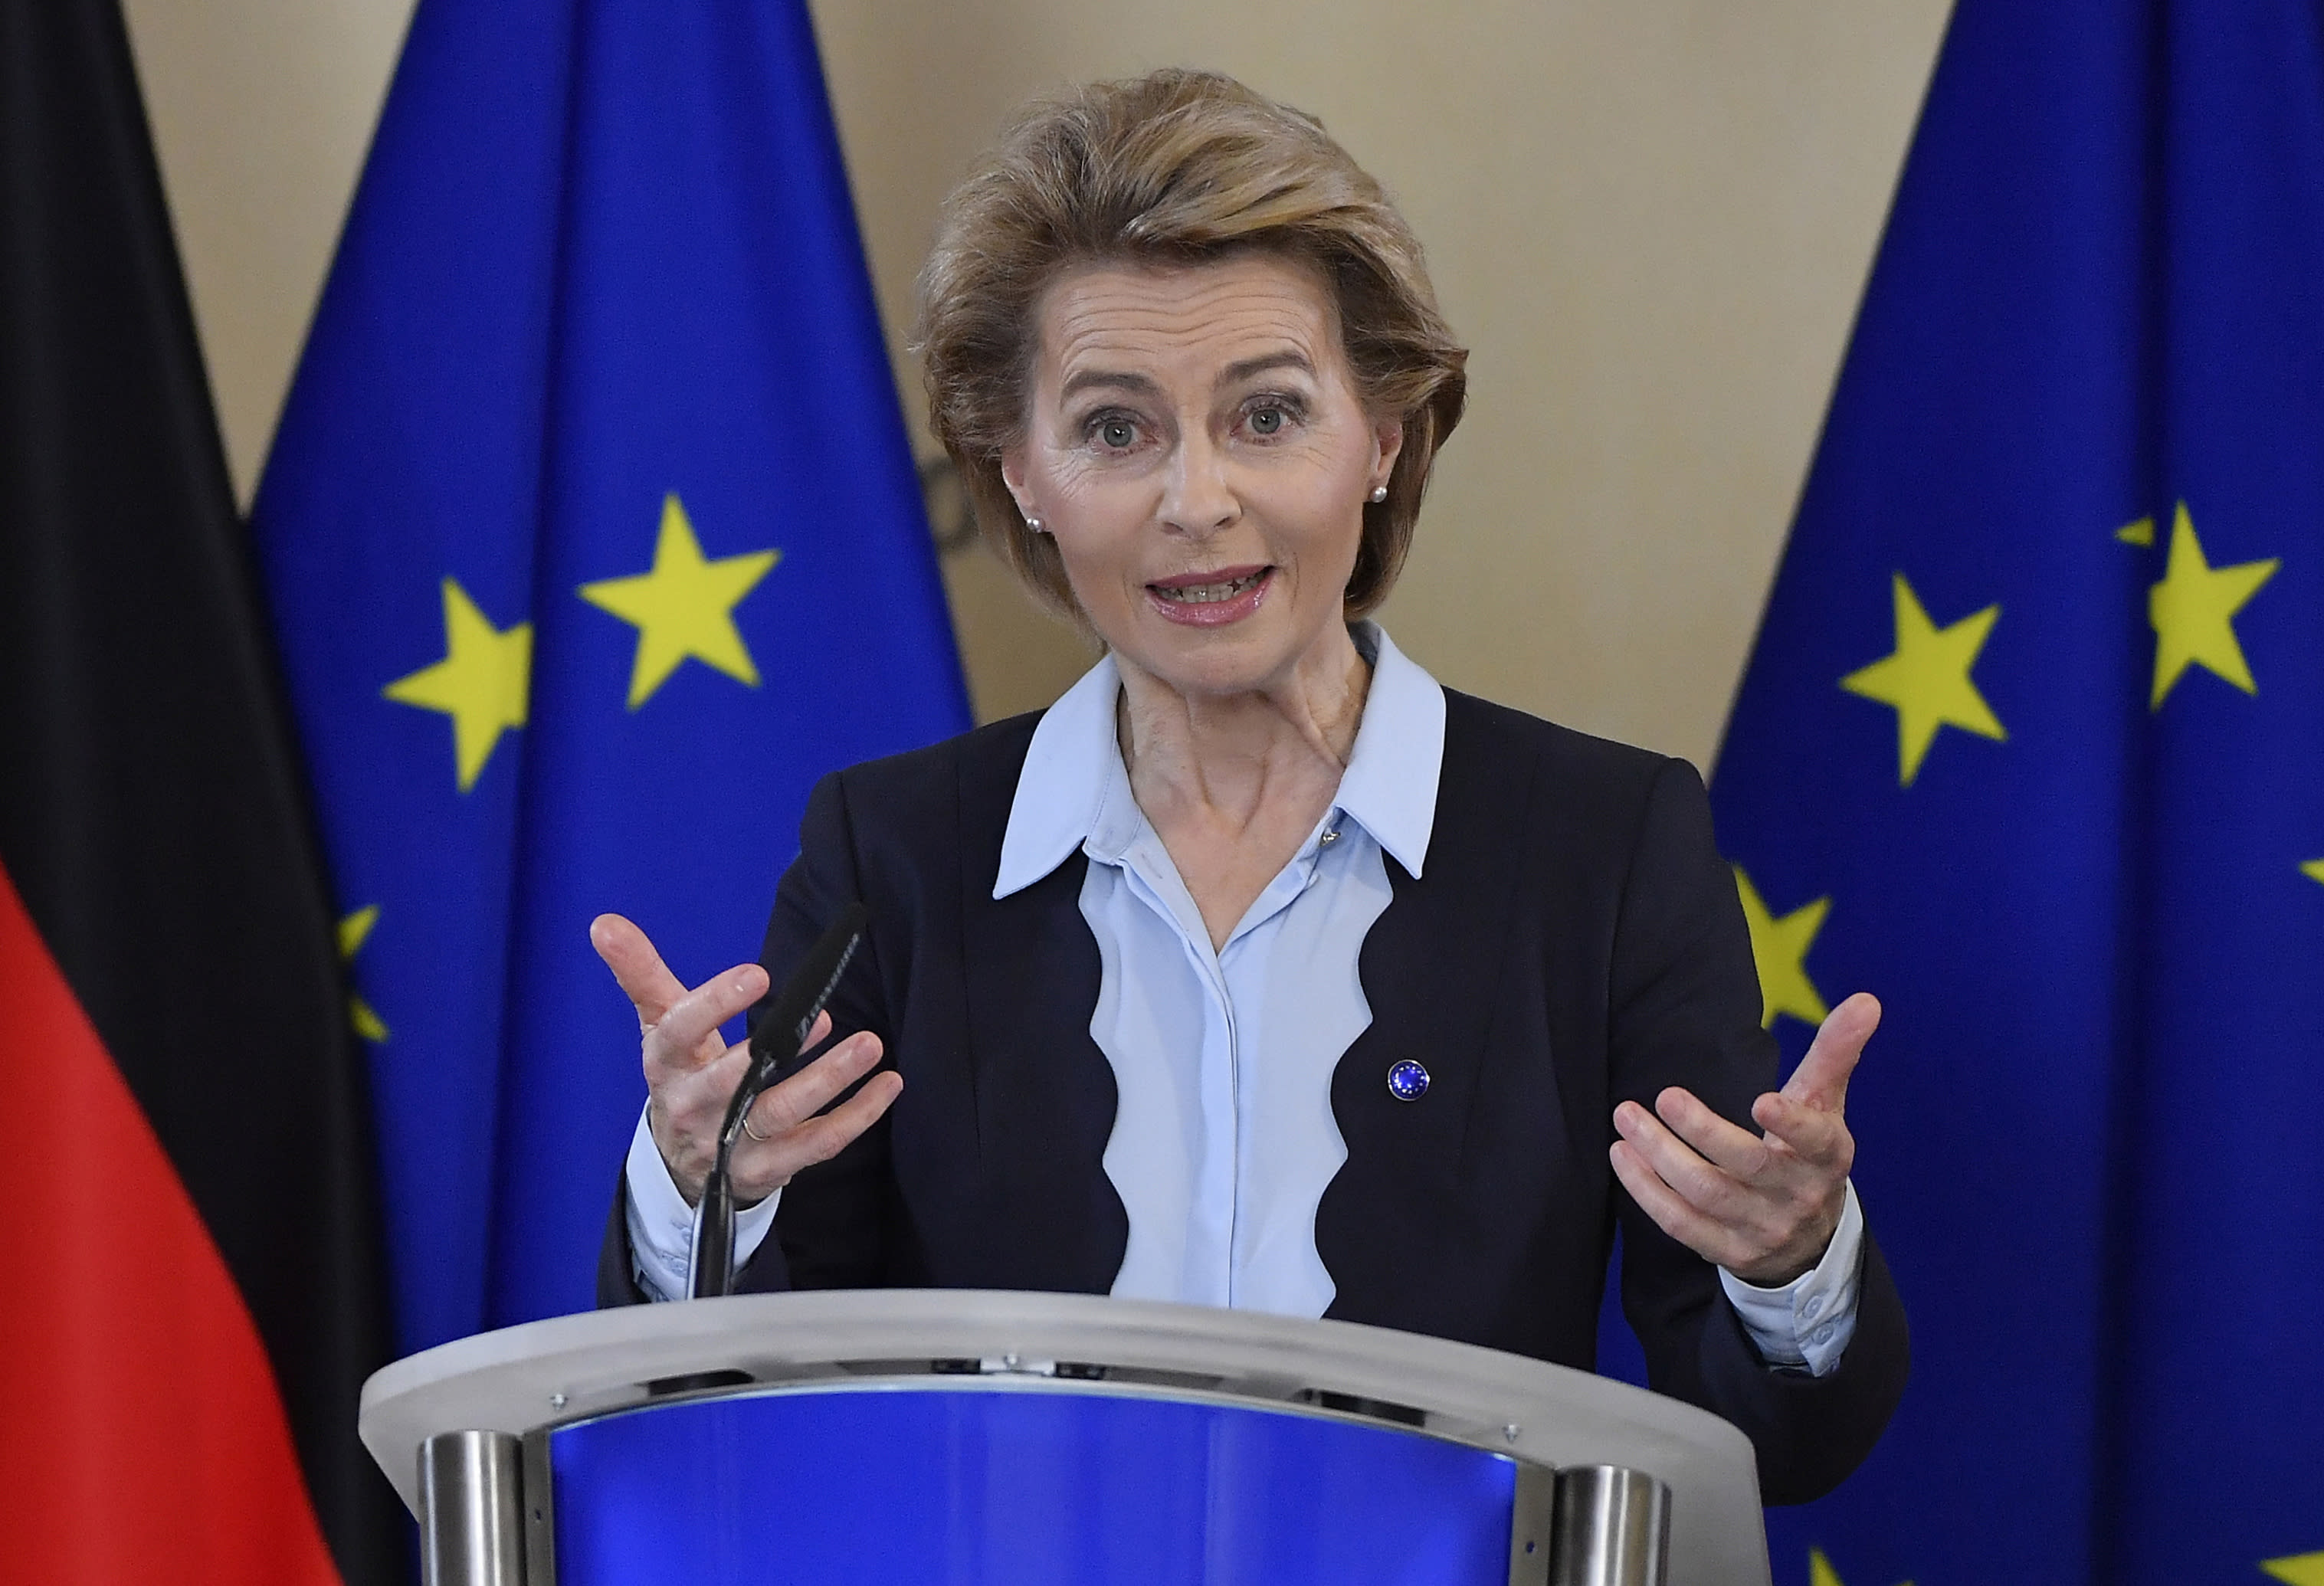 President of the European Commission Ursula von der Leyen addresses a joint press conference with German Chancellor Angela Merkel, attending by video conference, on the start of the six month German Presidency of the EU at EU Headquarters in Brussels, Thursday, July 2, 2020. (John Thys, Pool Photo via AP)